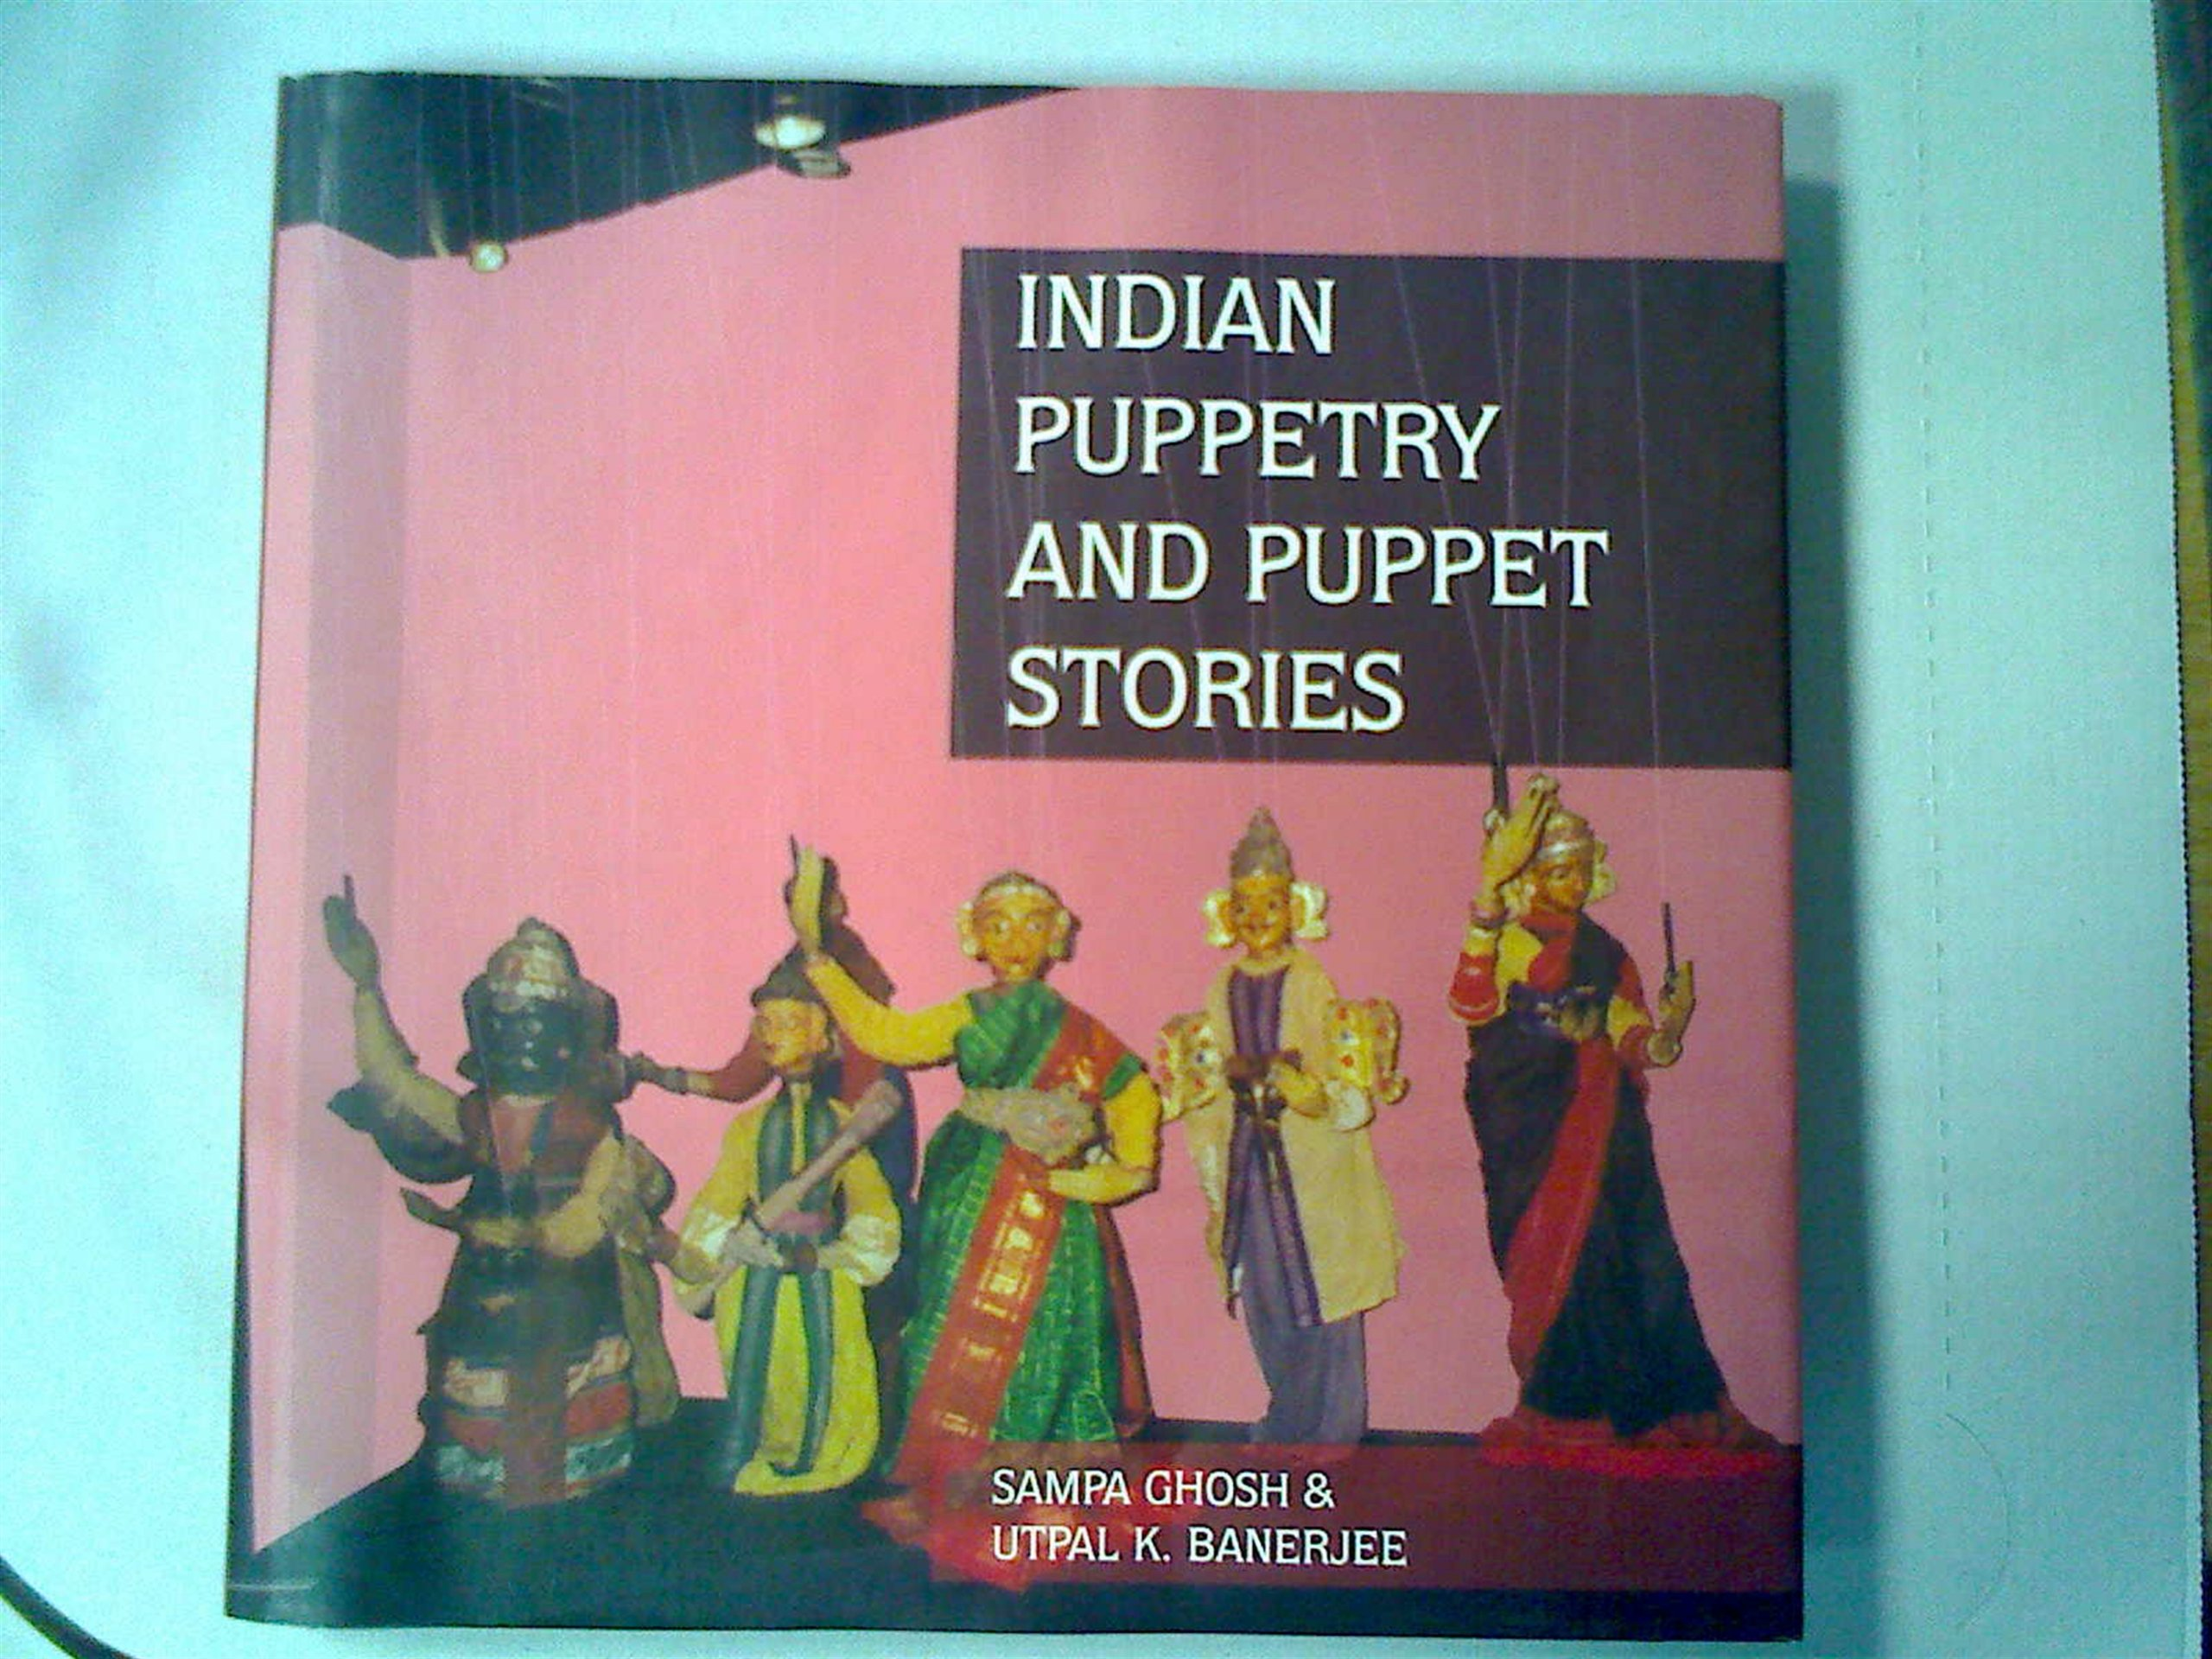 Indian Puppetry and Puppet Stories